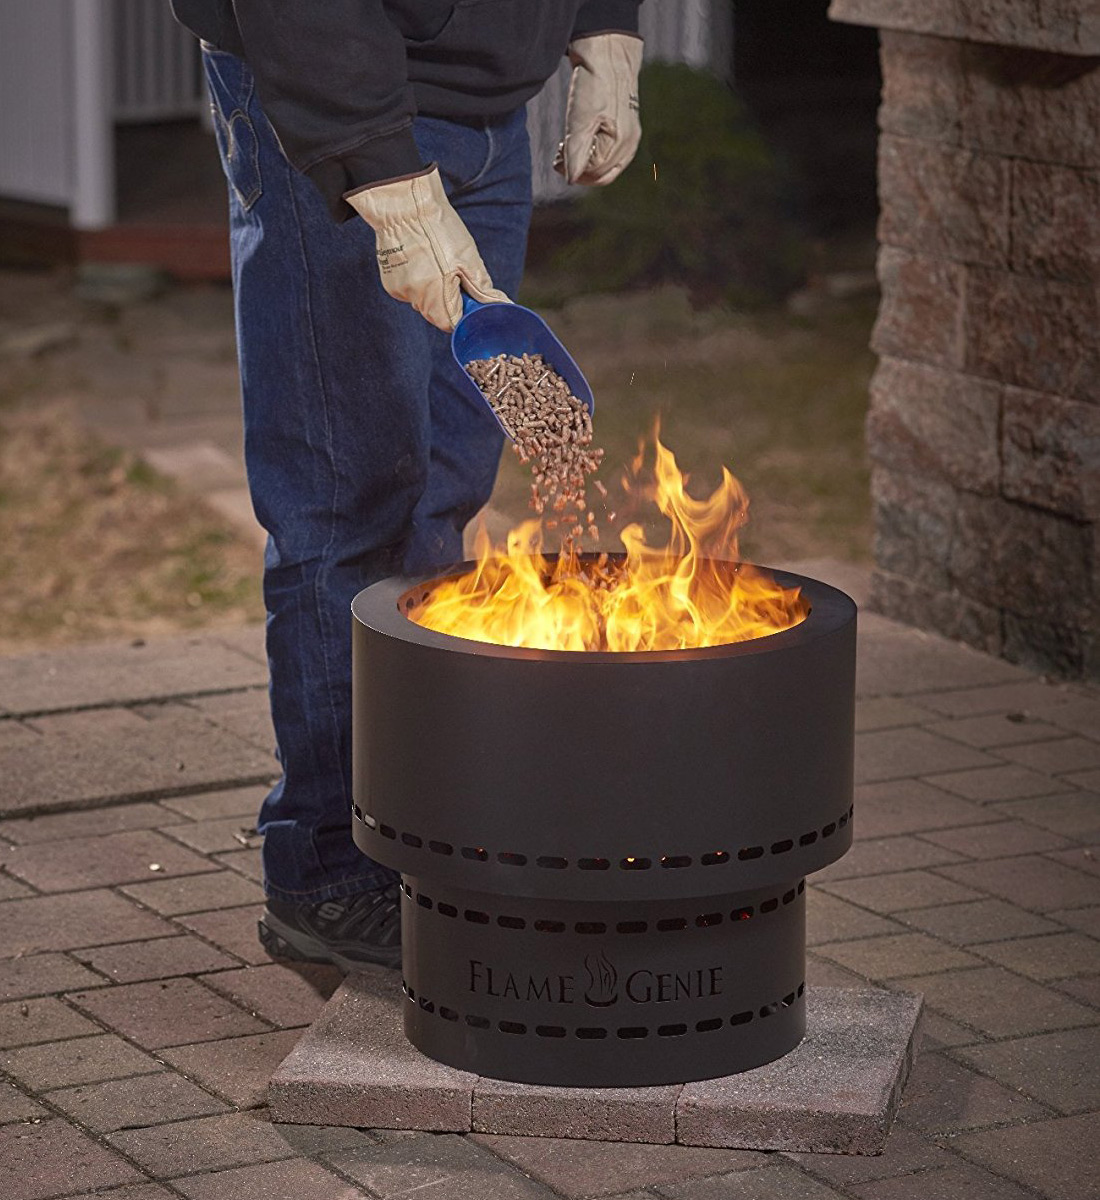 Flame Genie Wood Pellet Smokeless Fire Pit